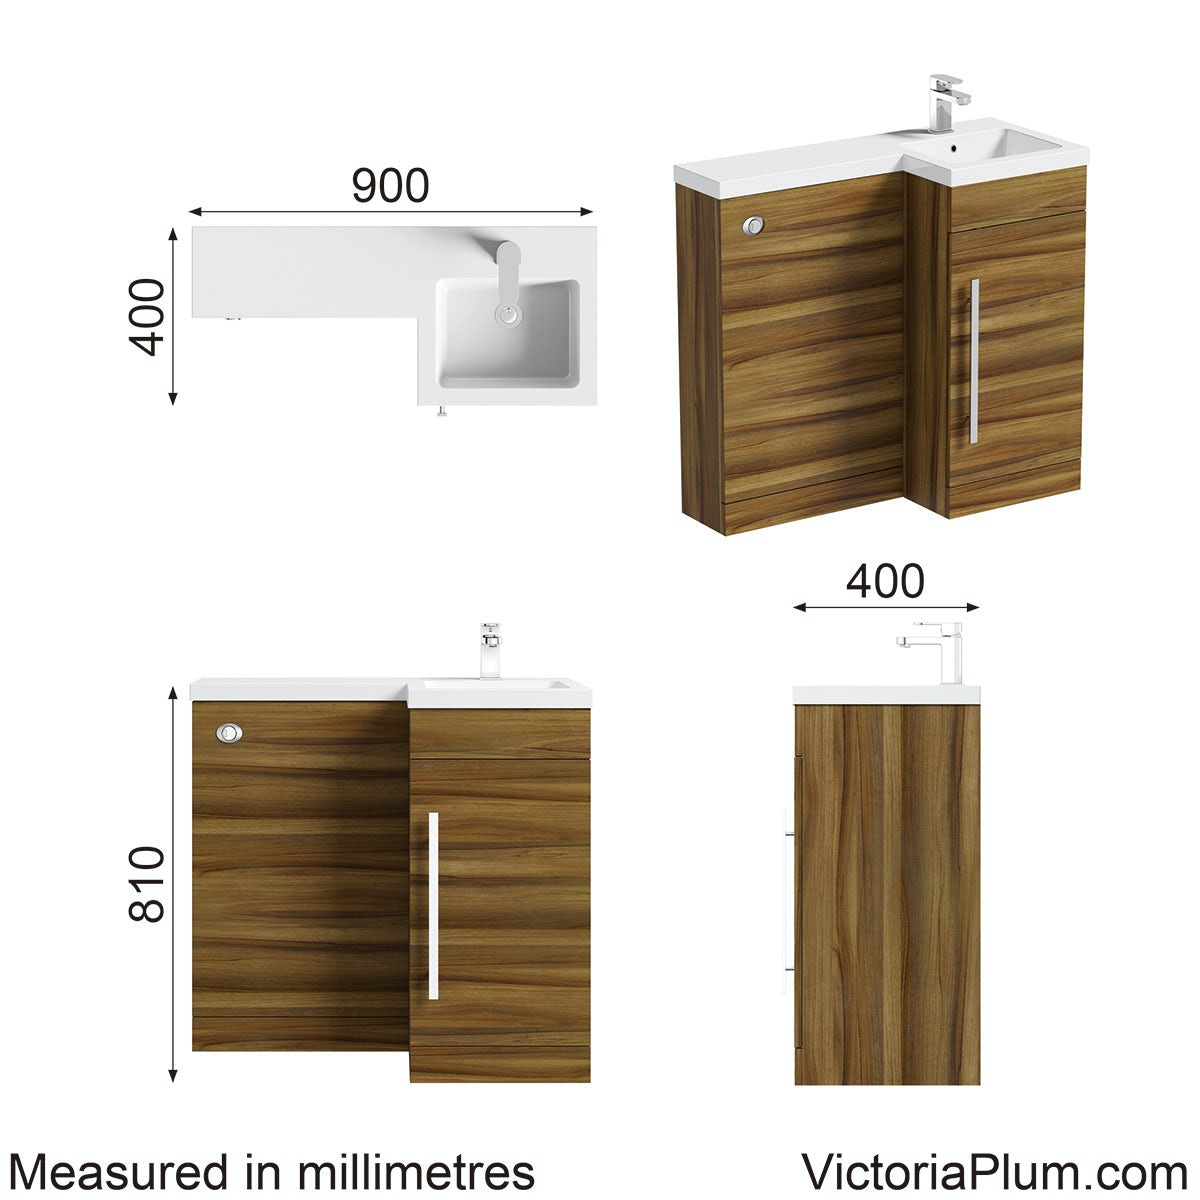 Dimensions for Orchard MySpace walnut right handed unit including concealed cistern